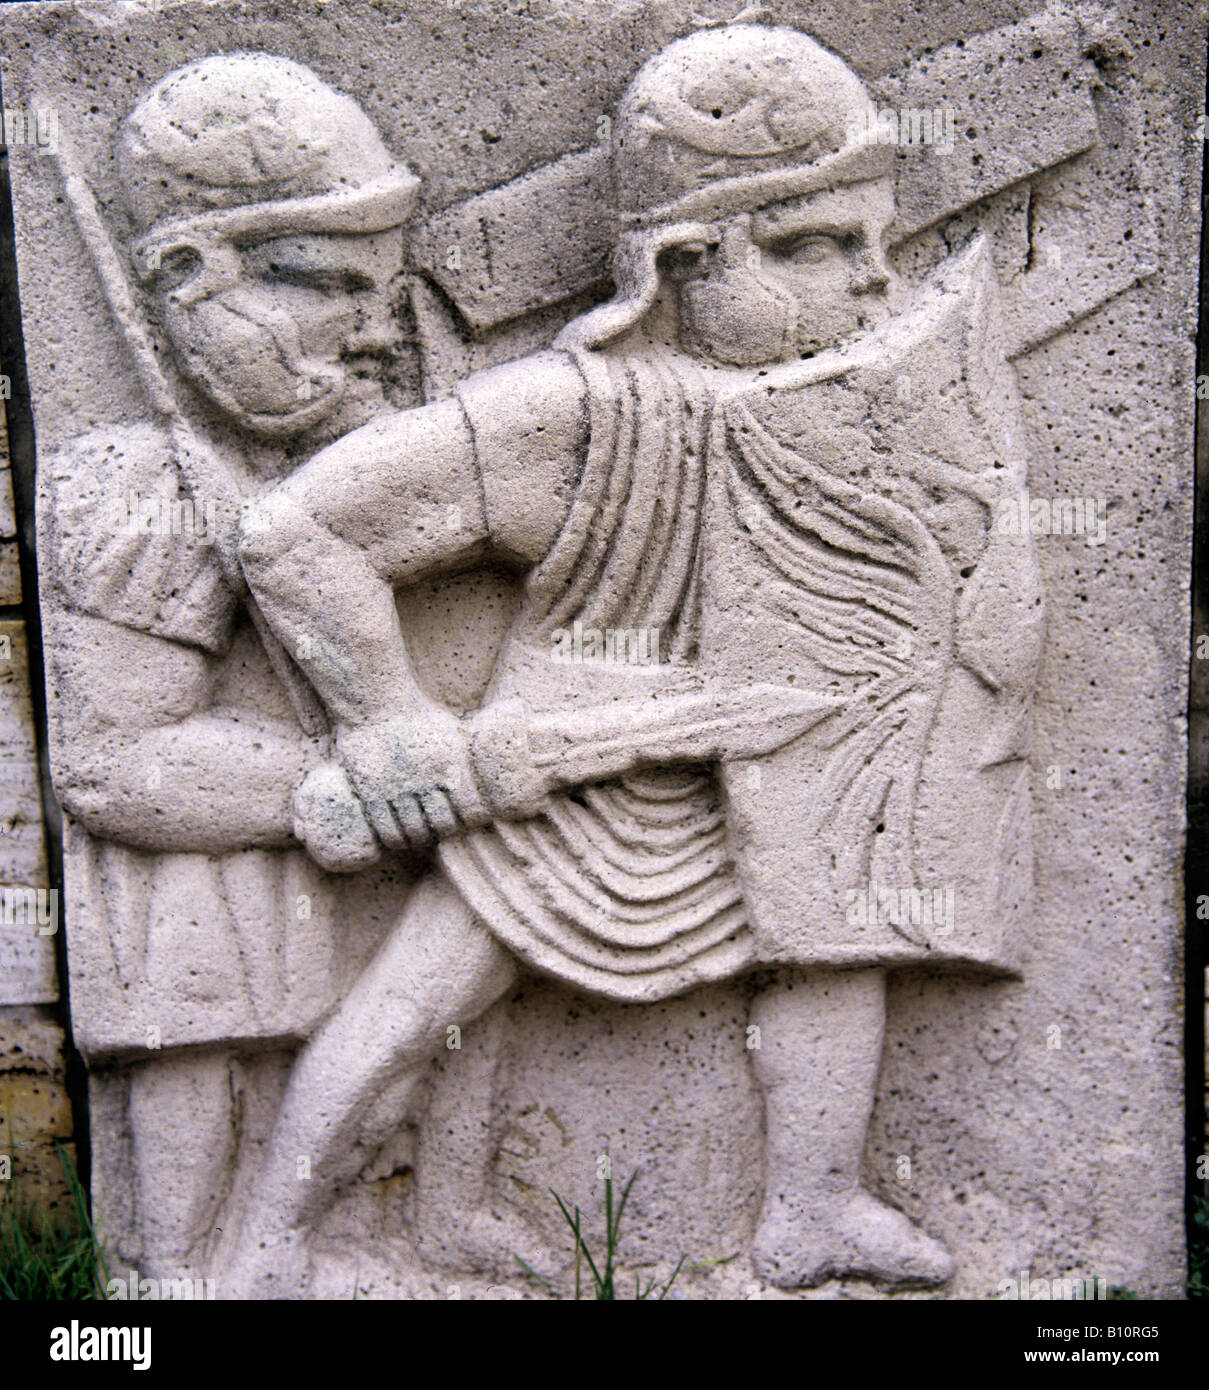 Roman legionaries with shields helmets and dagger 1st c AD Germano Roman Copyright: AAA Collection Ltd - Stock Image